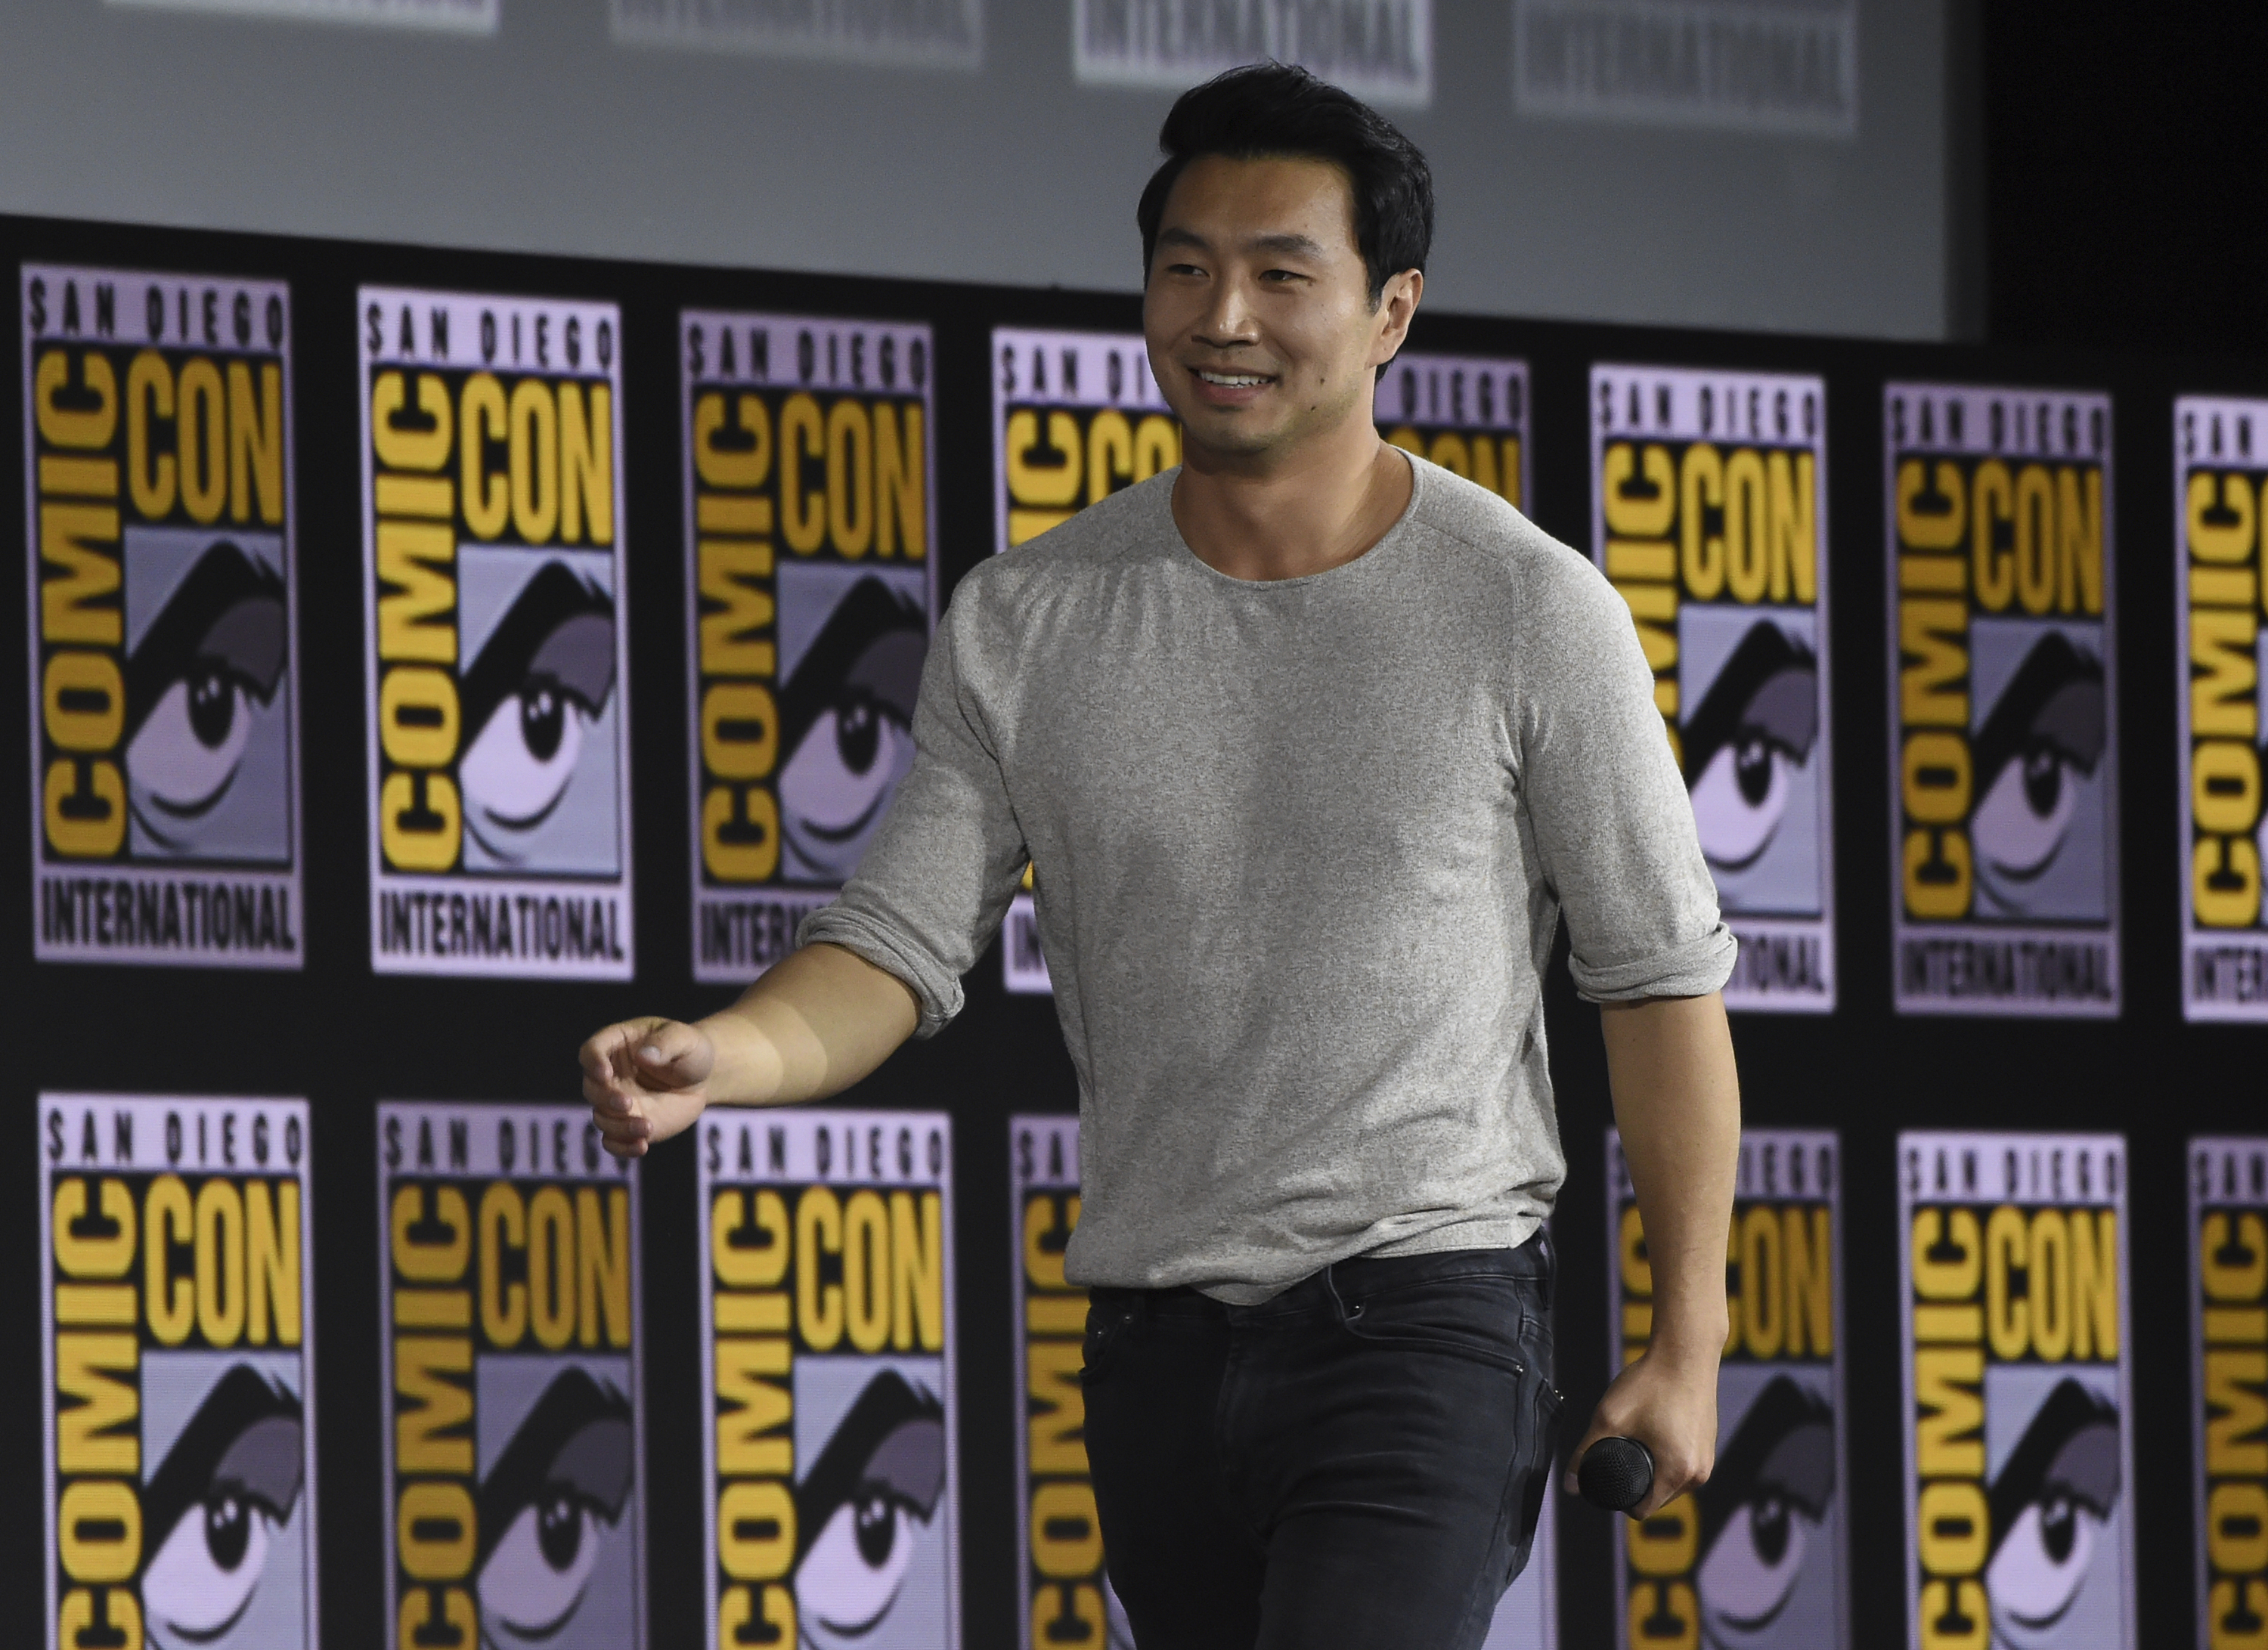 """Simu Liu walks on stage during the """"Shang-Chi and The Legend of the Ten Rings"""" portion of the Marvel Studios panel on day three of Comic-Con International on Saturday, July 20, 2019, in San Diego. (Photo by Chris Pizzello/Invision/AP)"""